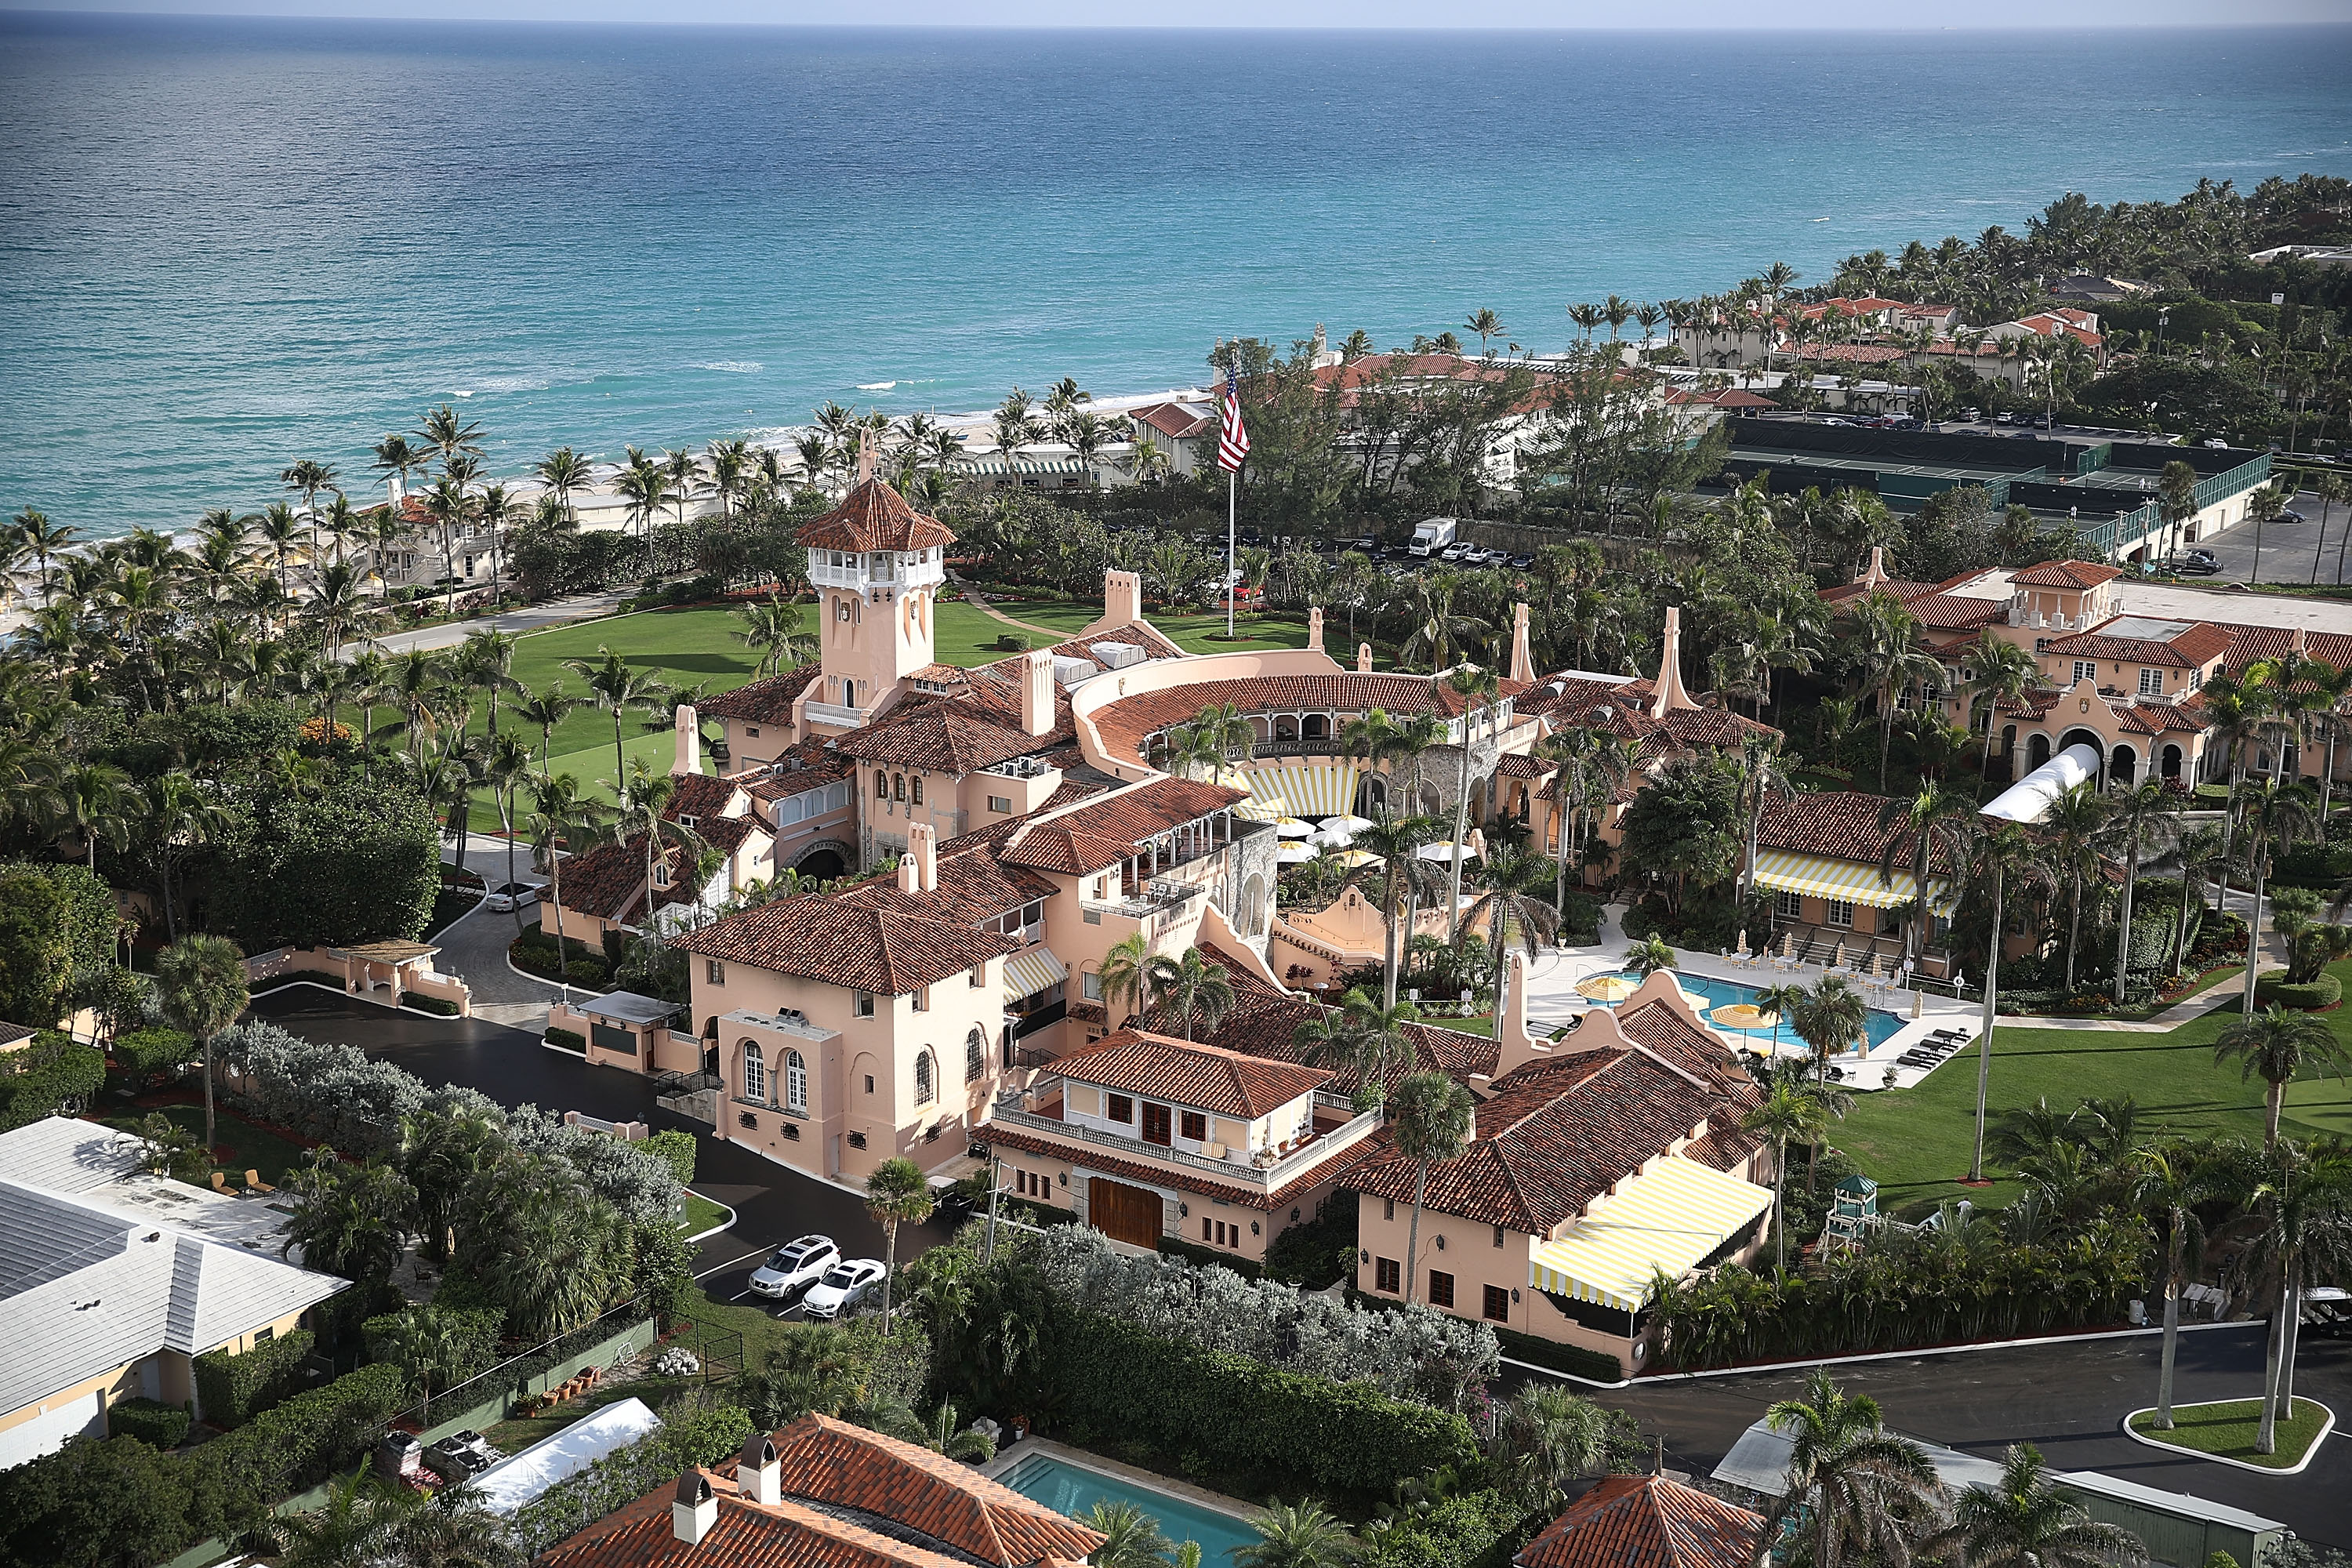 President Trump's Mar-a-Lago in Projected Path of Hurricane Dorian